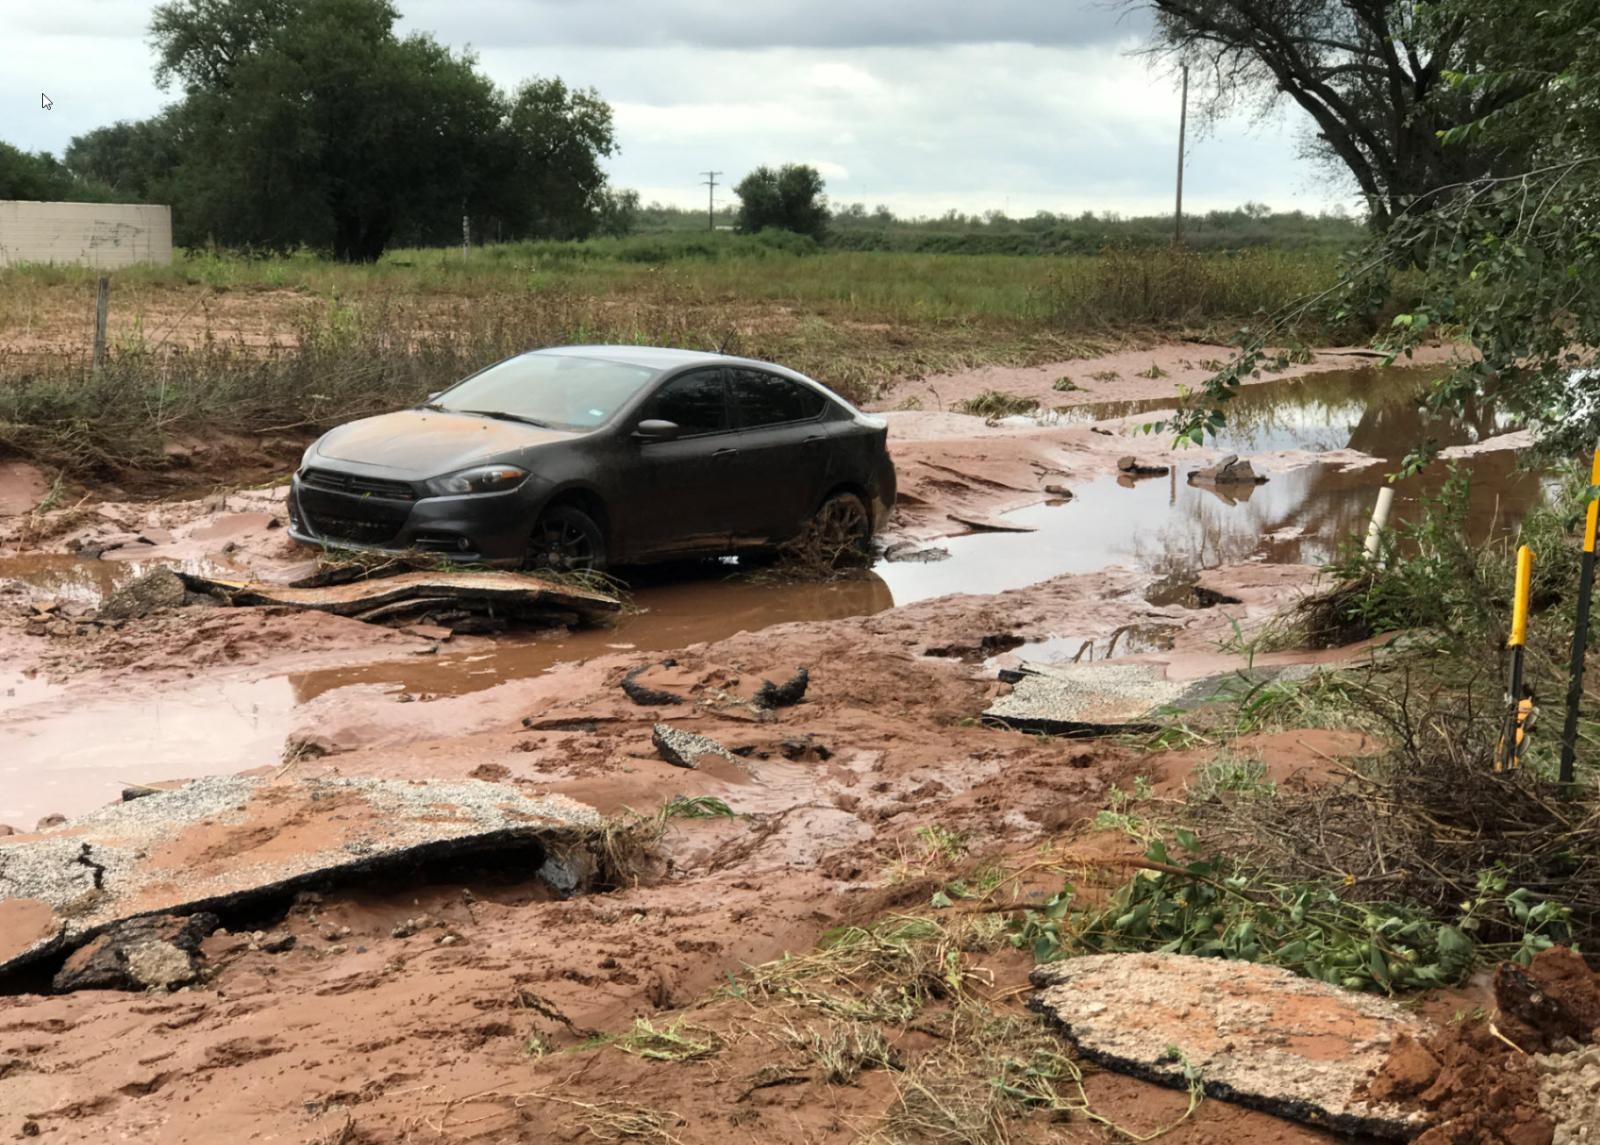 The flood waters washed out parts of FM 1619 just east of Highway 287 near Newlin. The image is courtesy of Bruce Haynie.